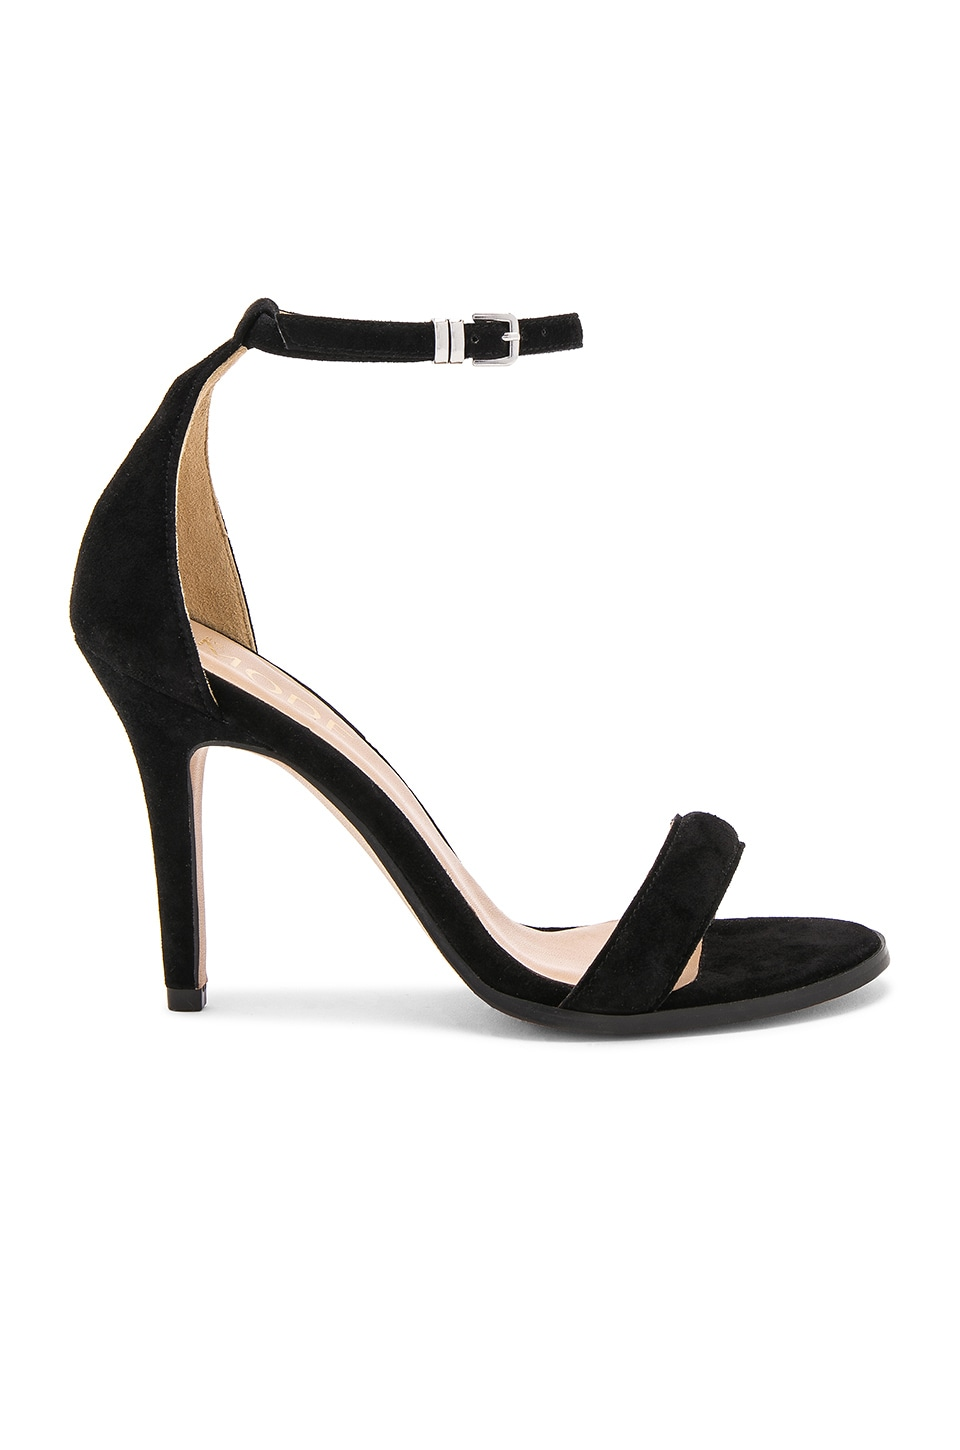 The Mode Collective Daria Sandal in Black Suede